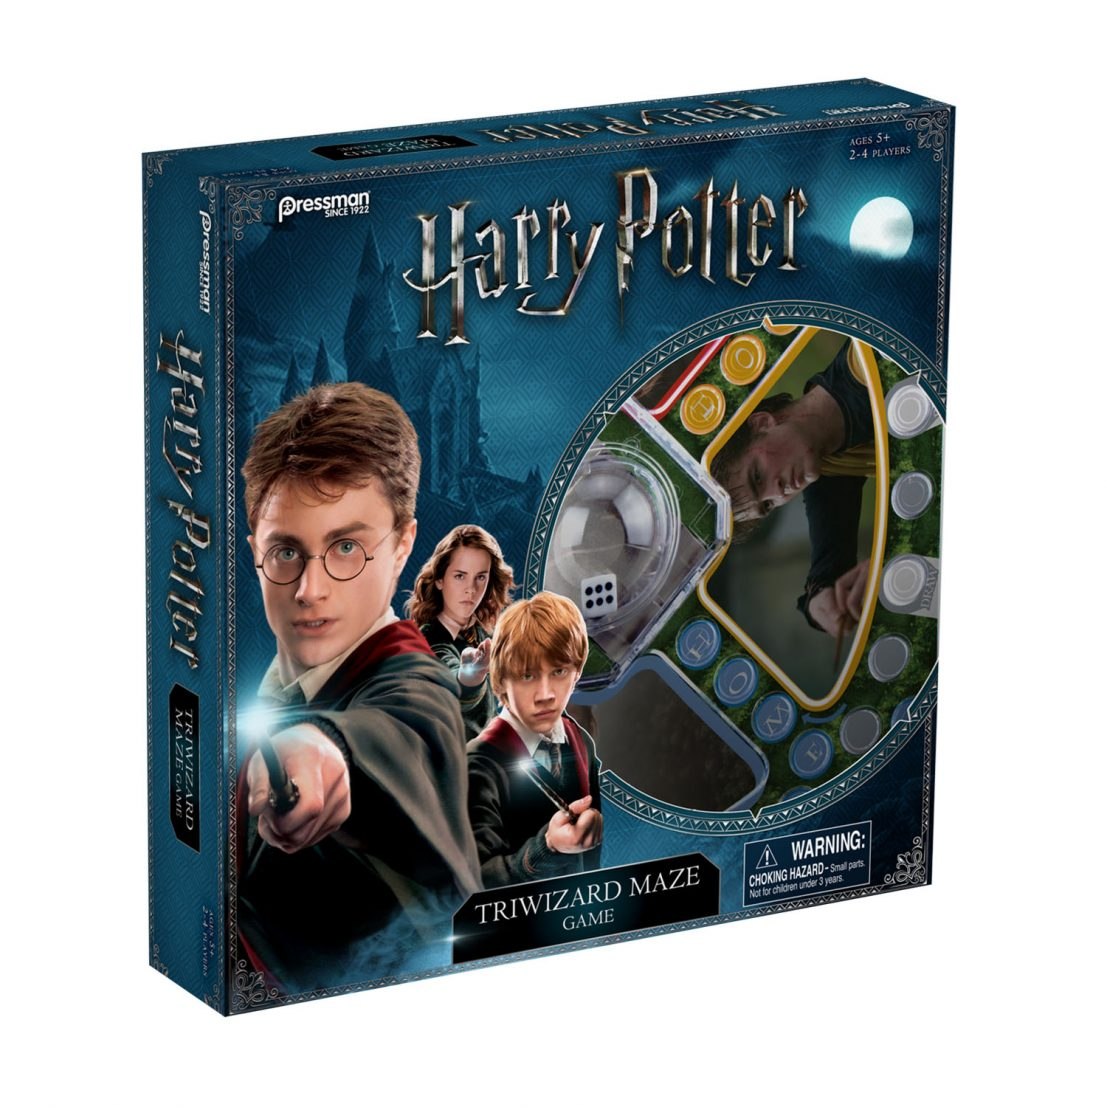 Harry Potter Triwizard Maze Game For 5 99 Reg 12 99